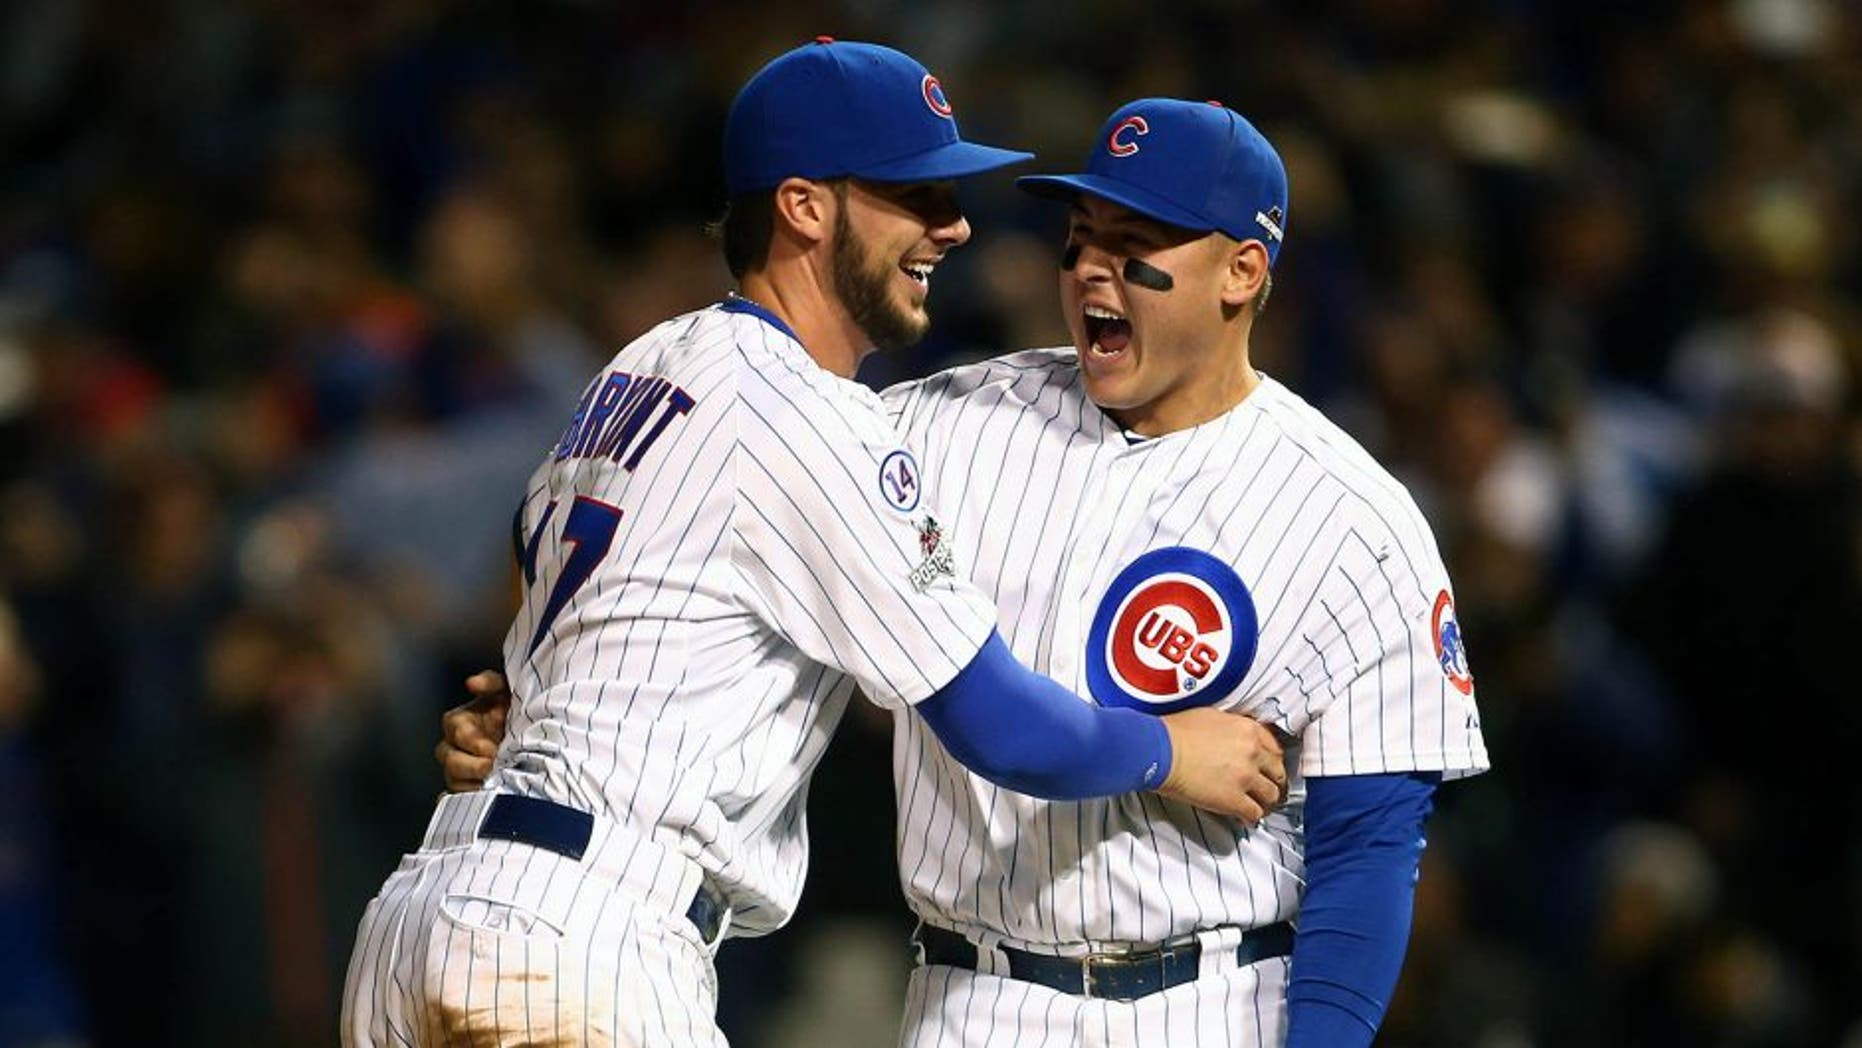 October 13, 2015; Chicago, IL, USA; Chicago Cubs third baseman Kris Bryant (17) and first baseman Anthony Rizzo (44) celebrate the 6-4 victory and against St. Louis Cardinals in game four of the NLDS at Wrigley Field. Mandatory Credit: Jerry Lai-USA TODAY Sports